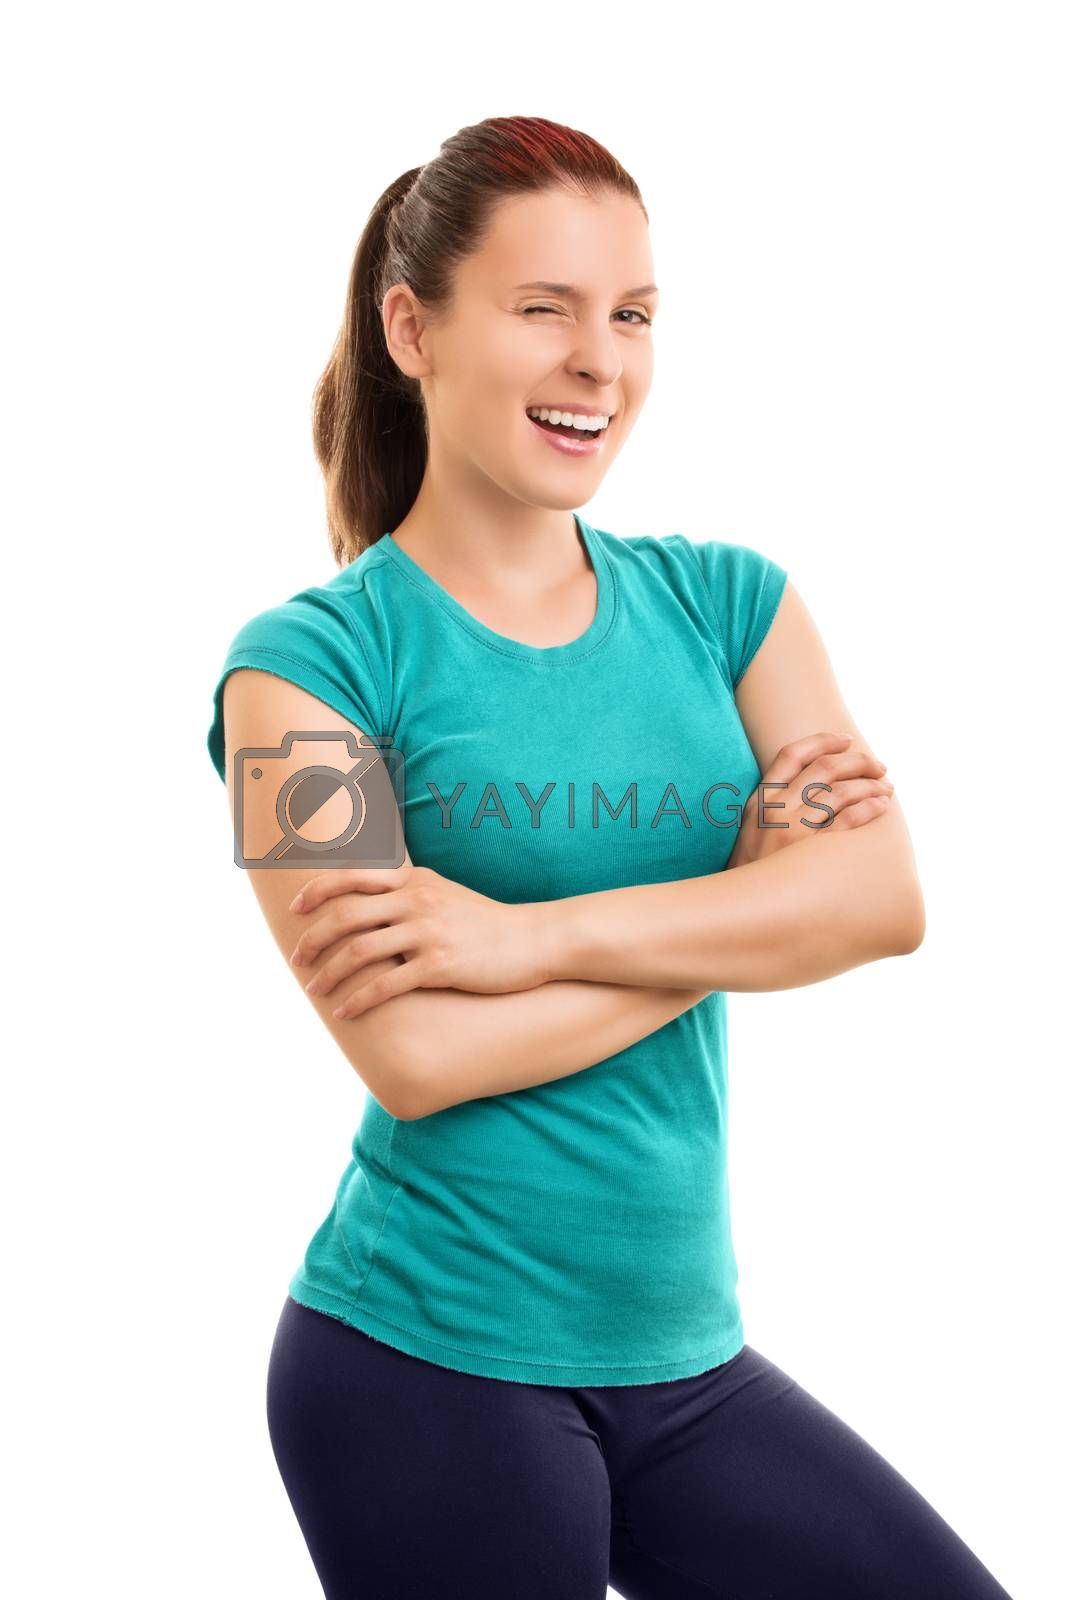 Body, mind and spirit all focused in good health. Smiling young athlete winking, isolated on white background.